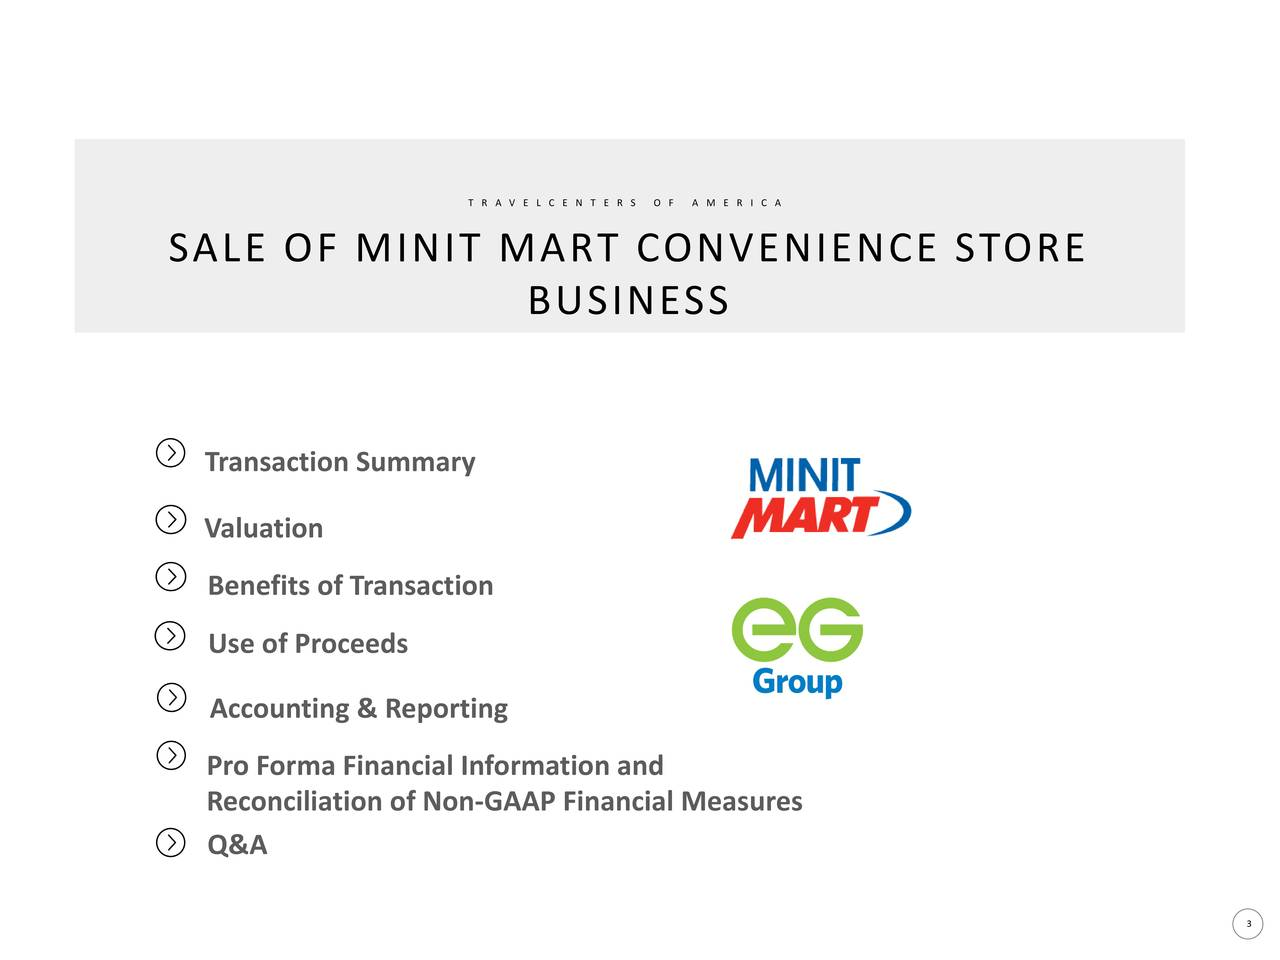 TravelCenters of America (TA) To Sell Minit Mart